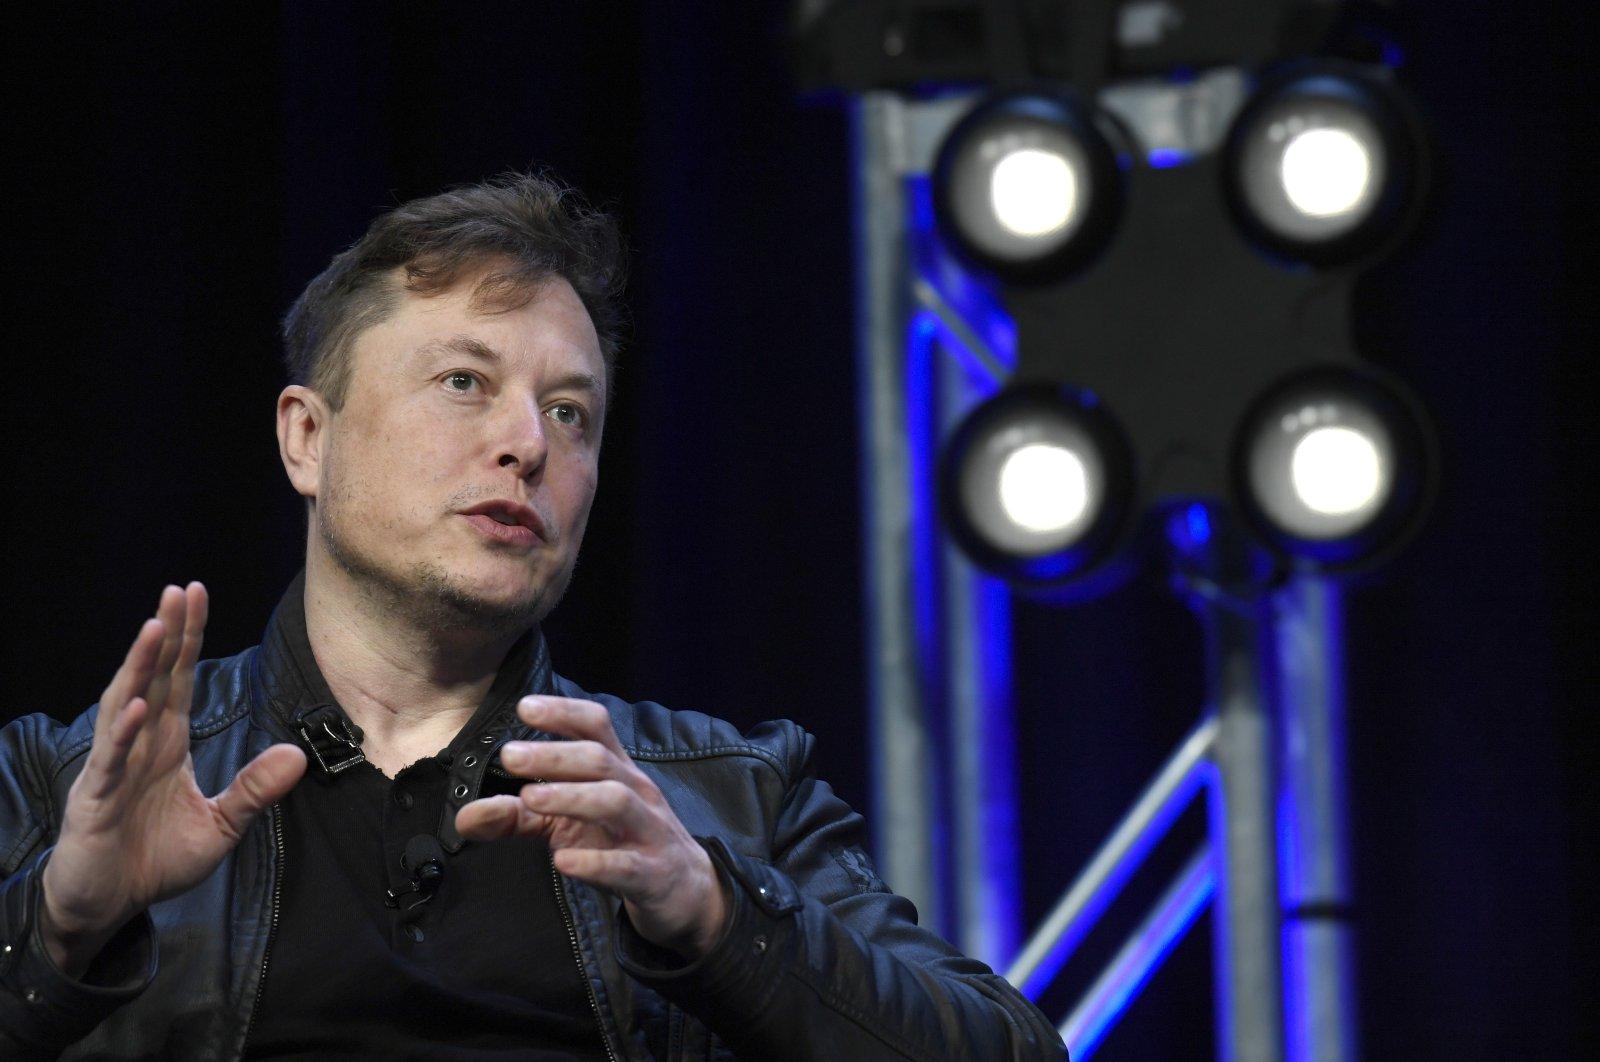 Tesla and SpaceX Chief Executive Officer Elon Musk speaks at the SATELLITE Conference and Exhibition in Washington, March 9, 2020. (AP Photo)